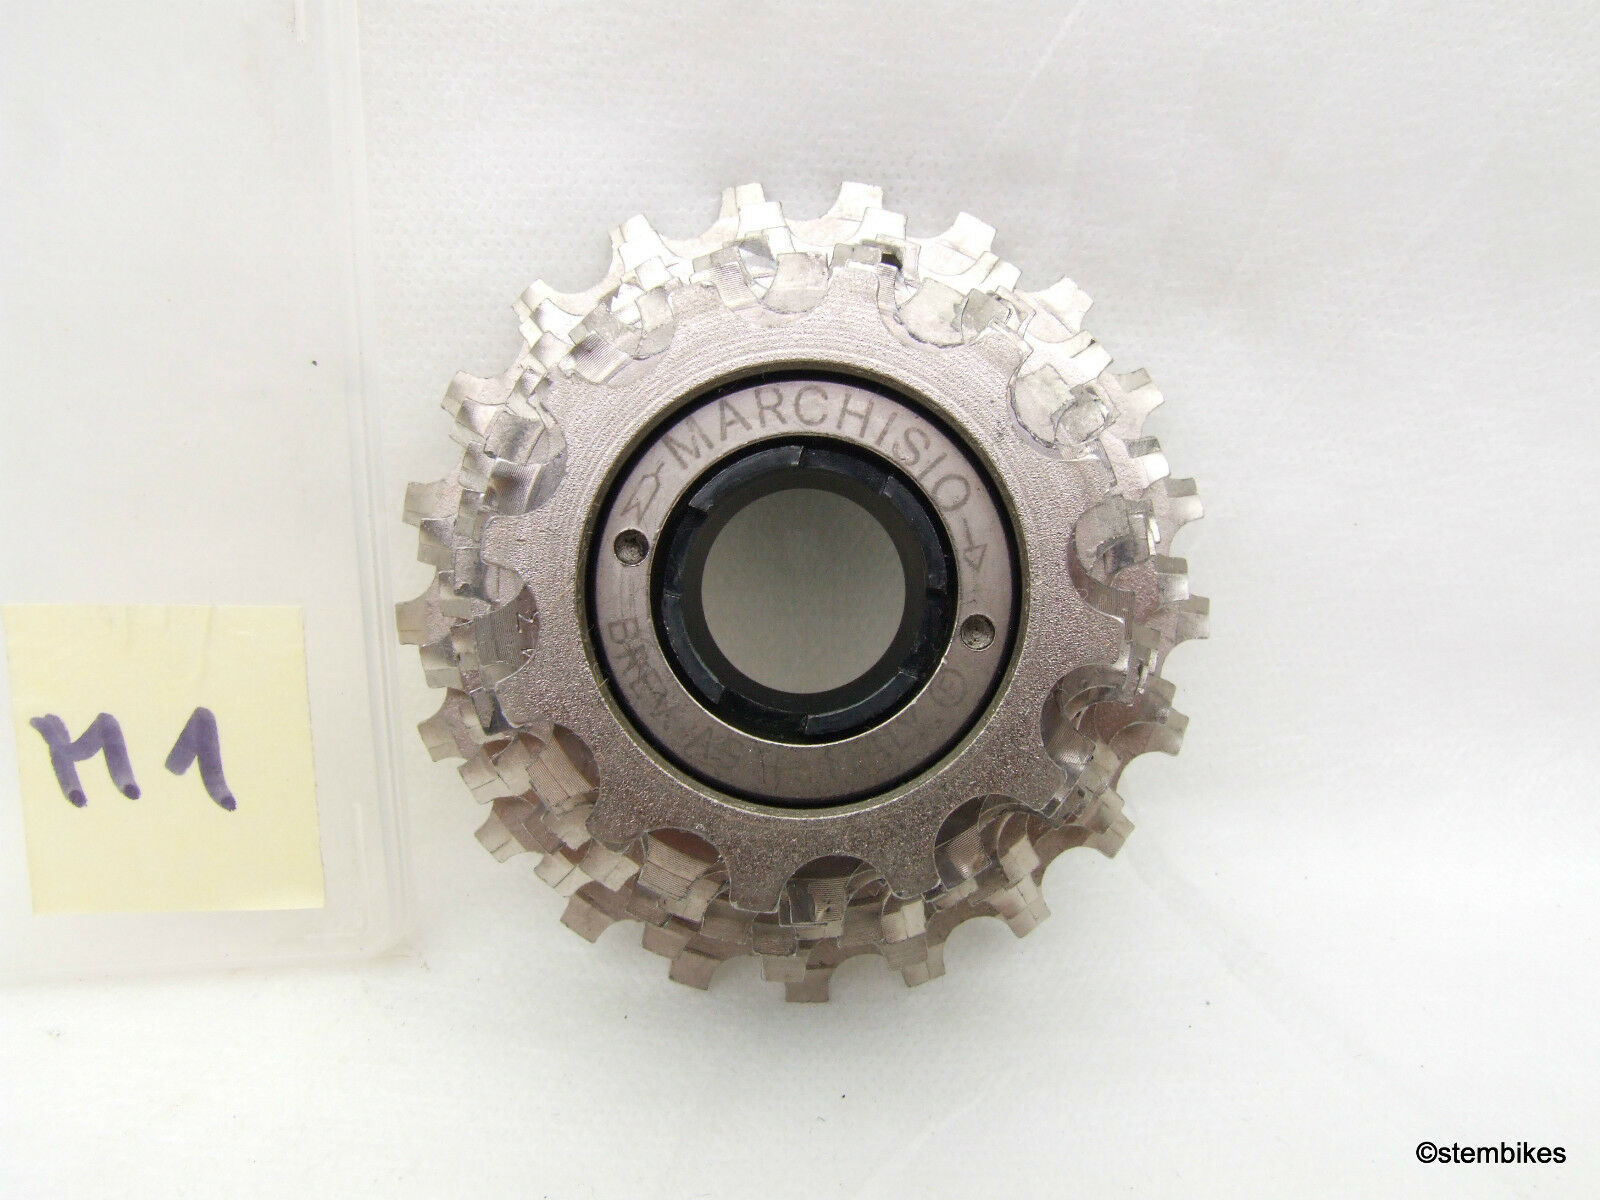 90s MAR SIO freewheel  8sp   12-13-14-15-16-17-19-21   used   EXCELLENT  save 35% - 70% off